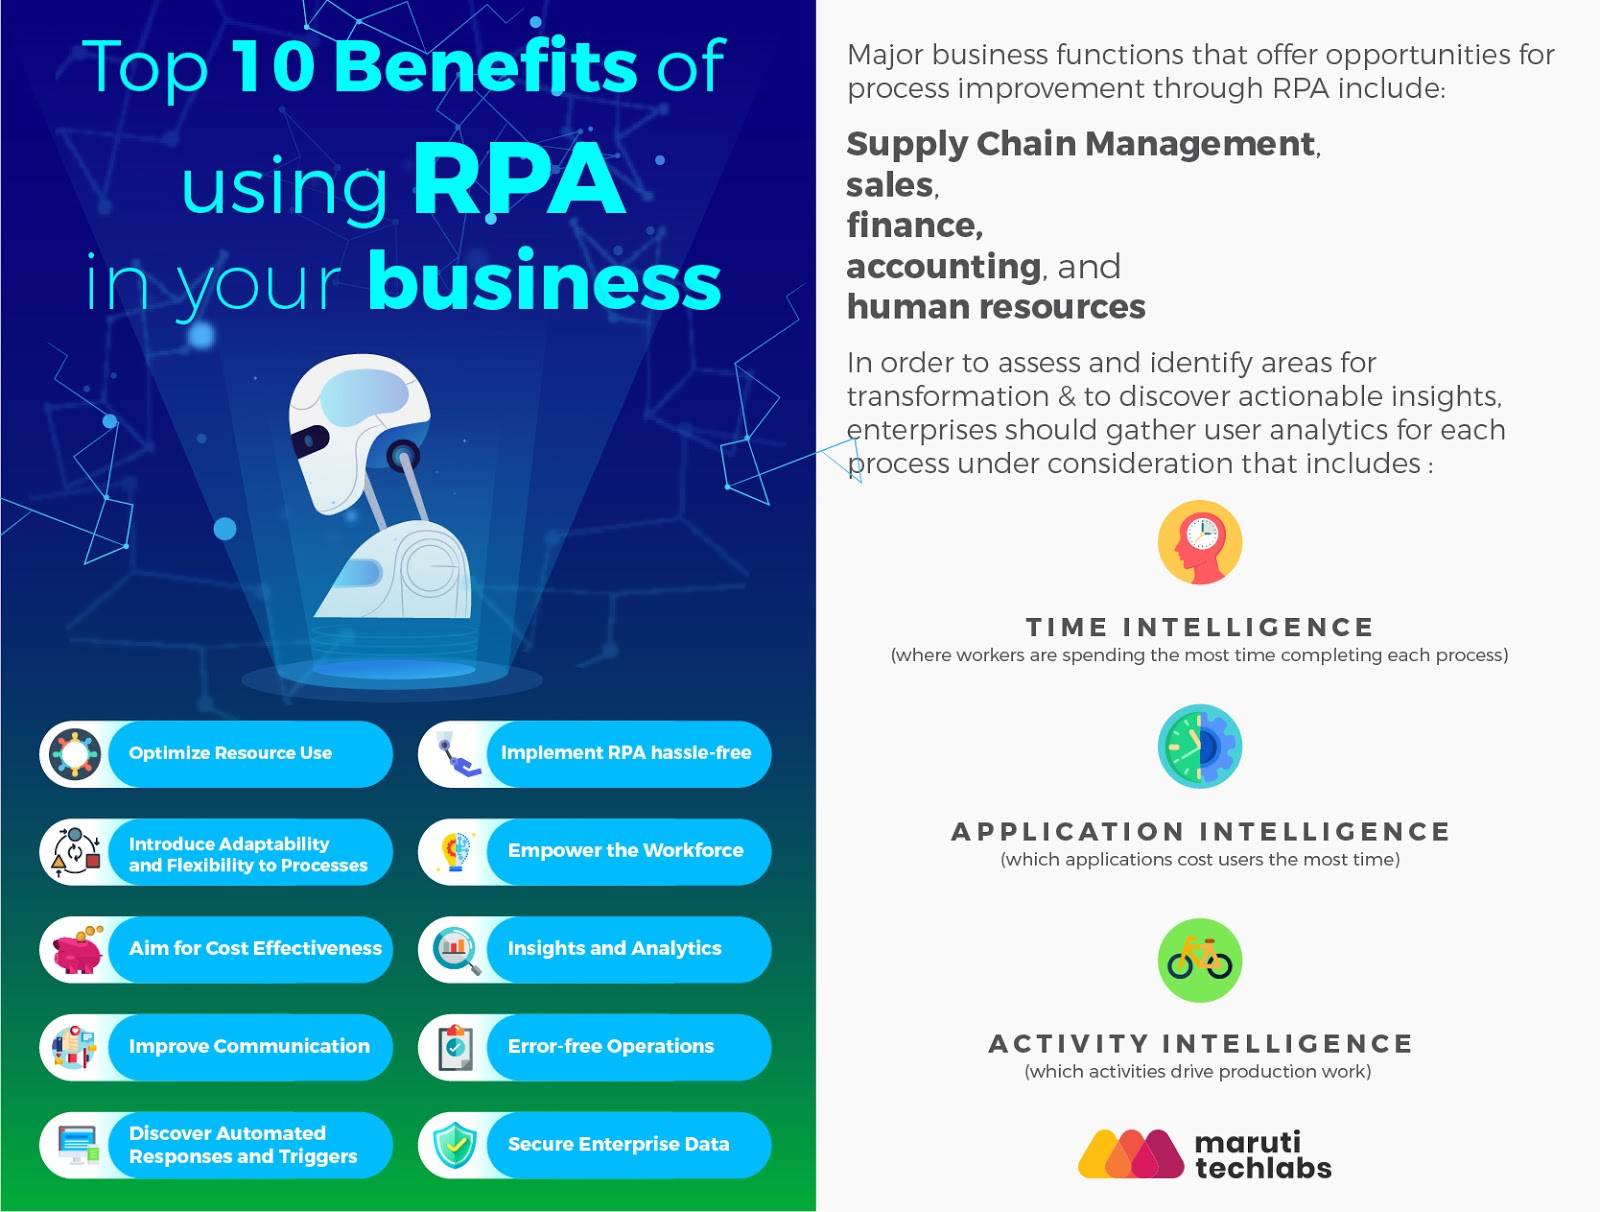 benefits-of-rpa-in-business